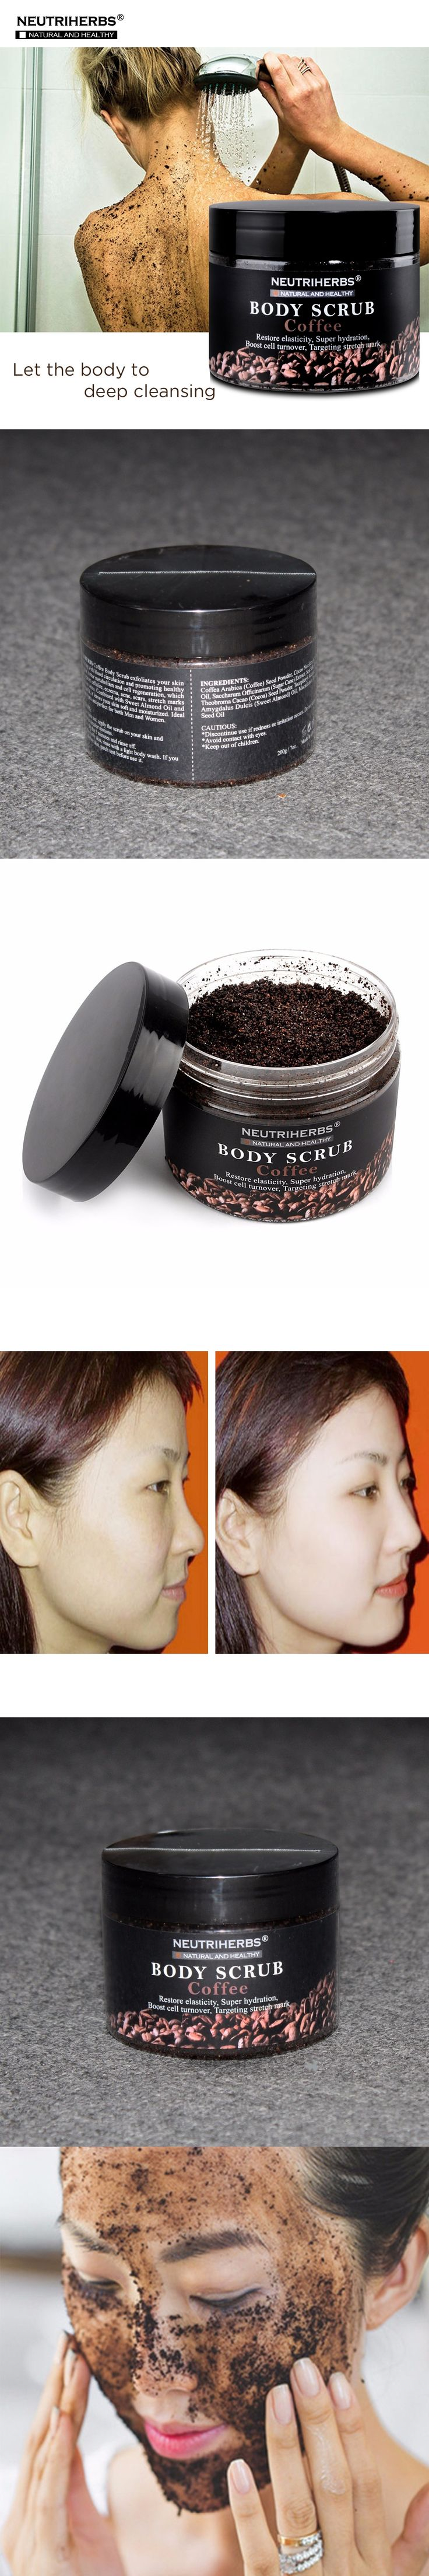 Coffee Body Scrub Moisturizing Body Scrub Cream For Exfoliating Whitening Reducing Cellulite Free Shipping 3pcs/set